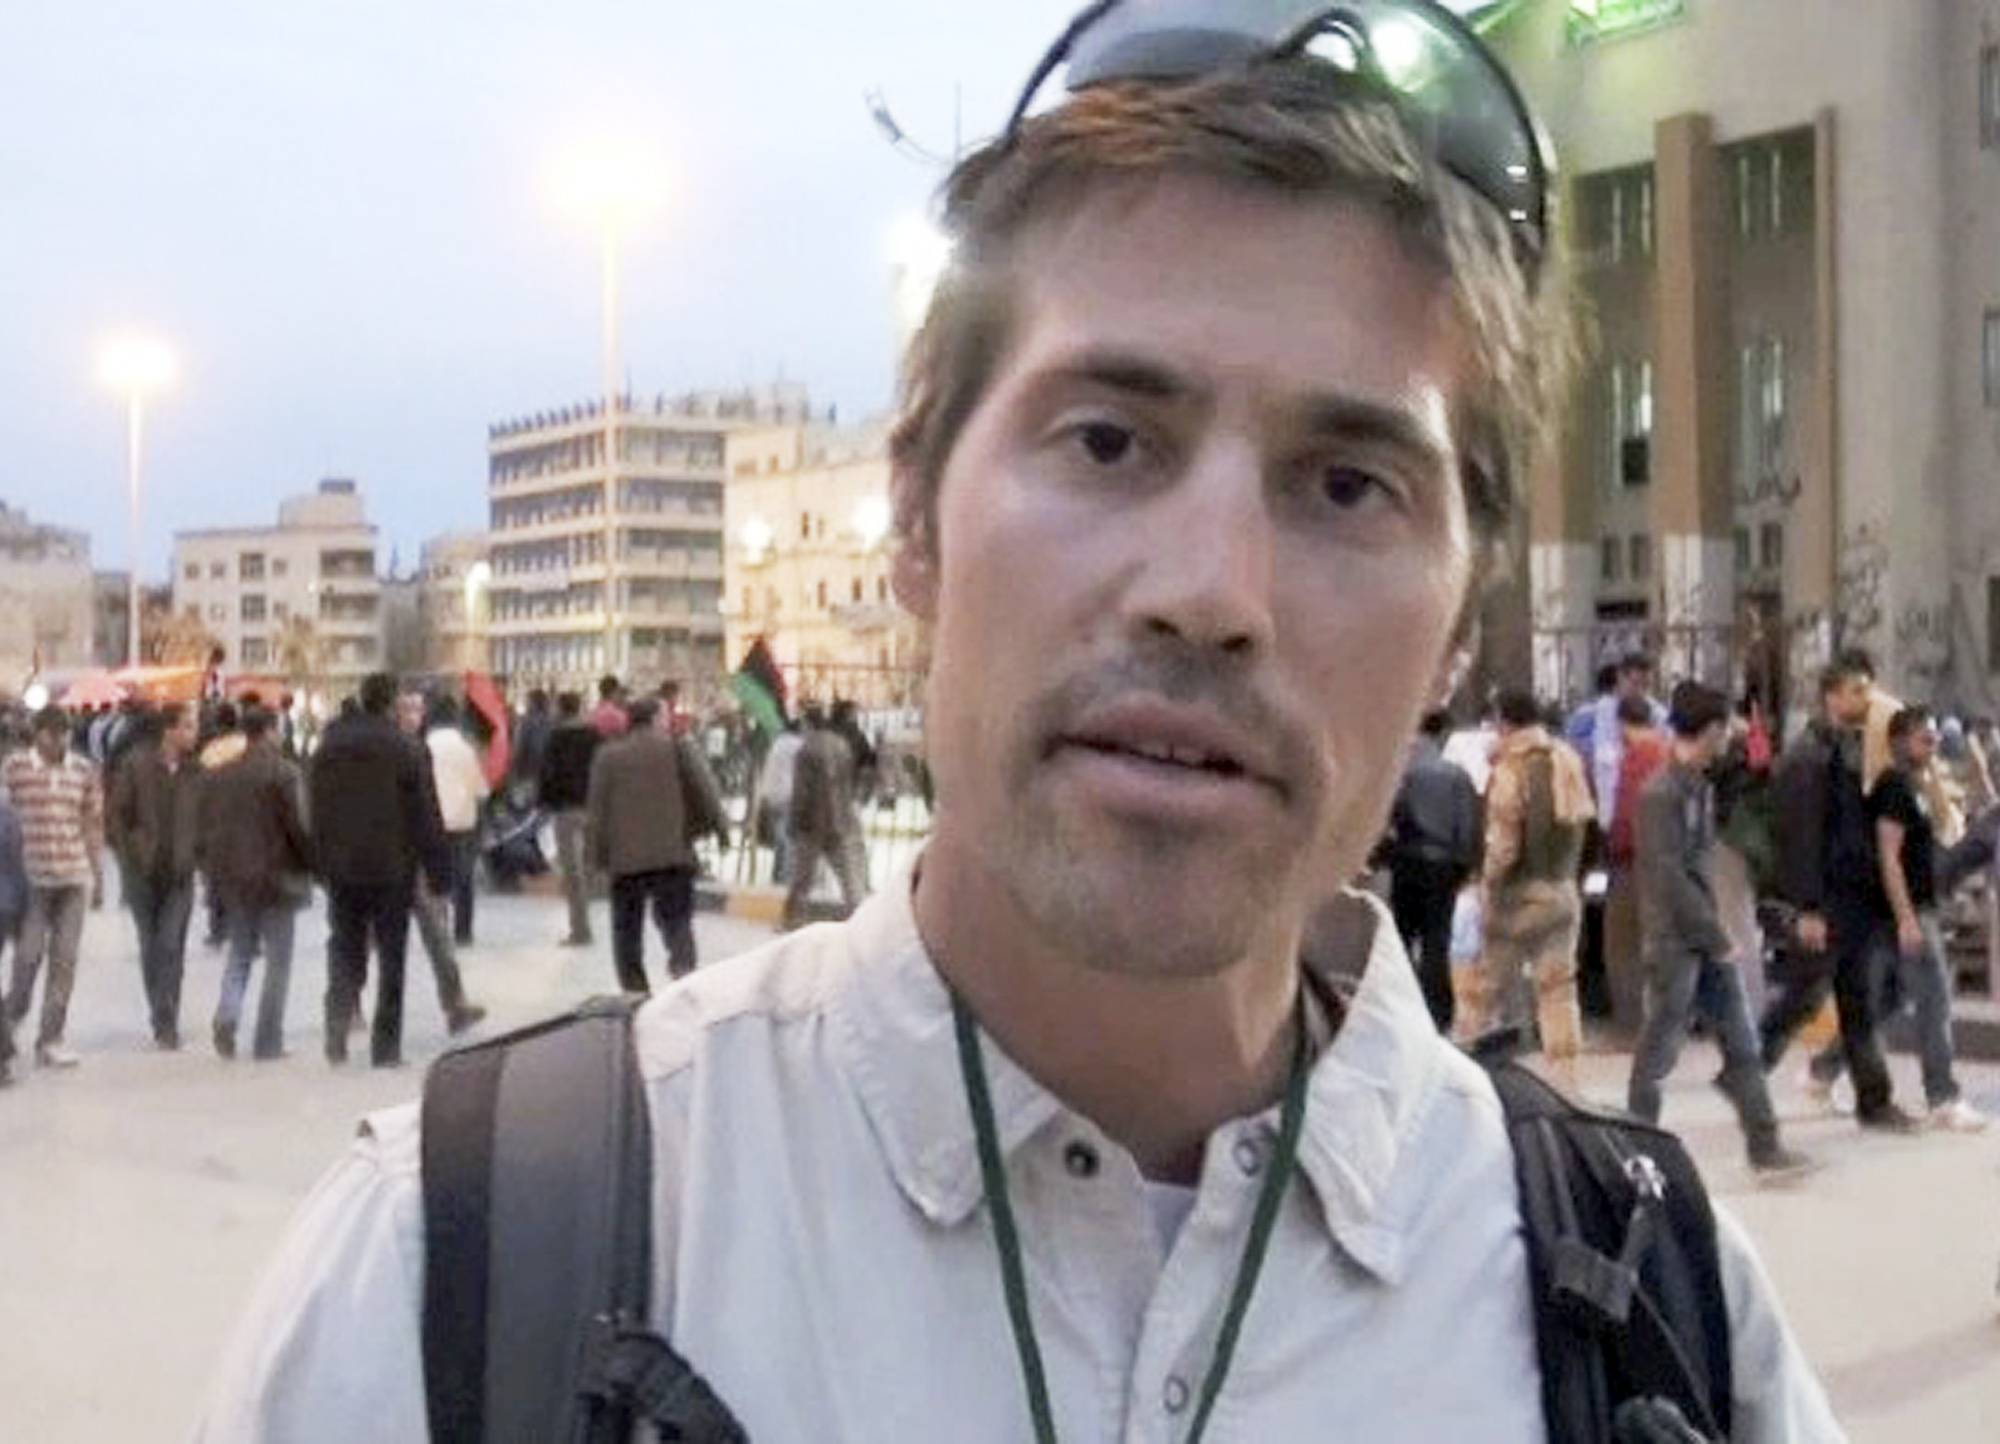 American photojournalist executed, another hostage at risk